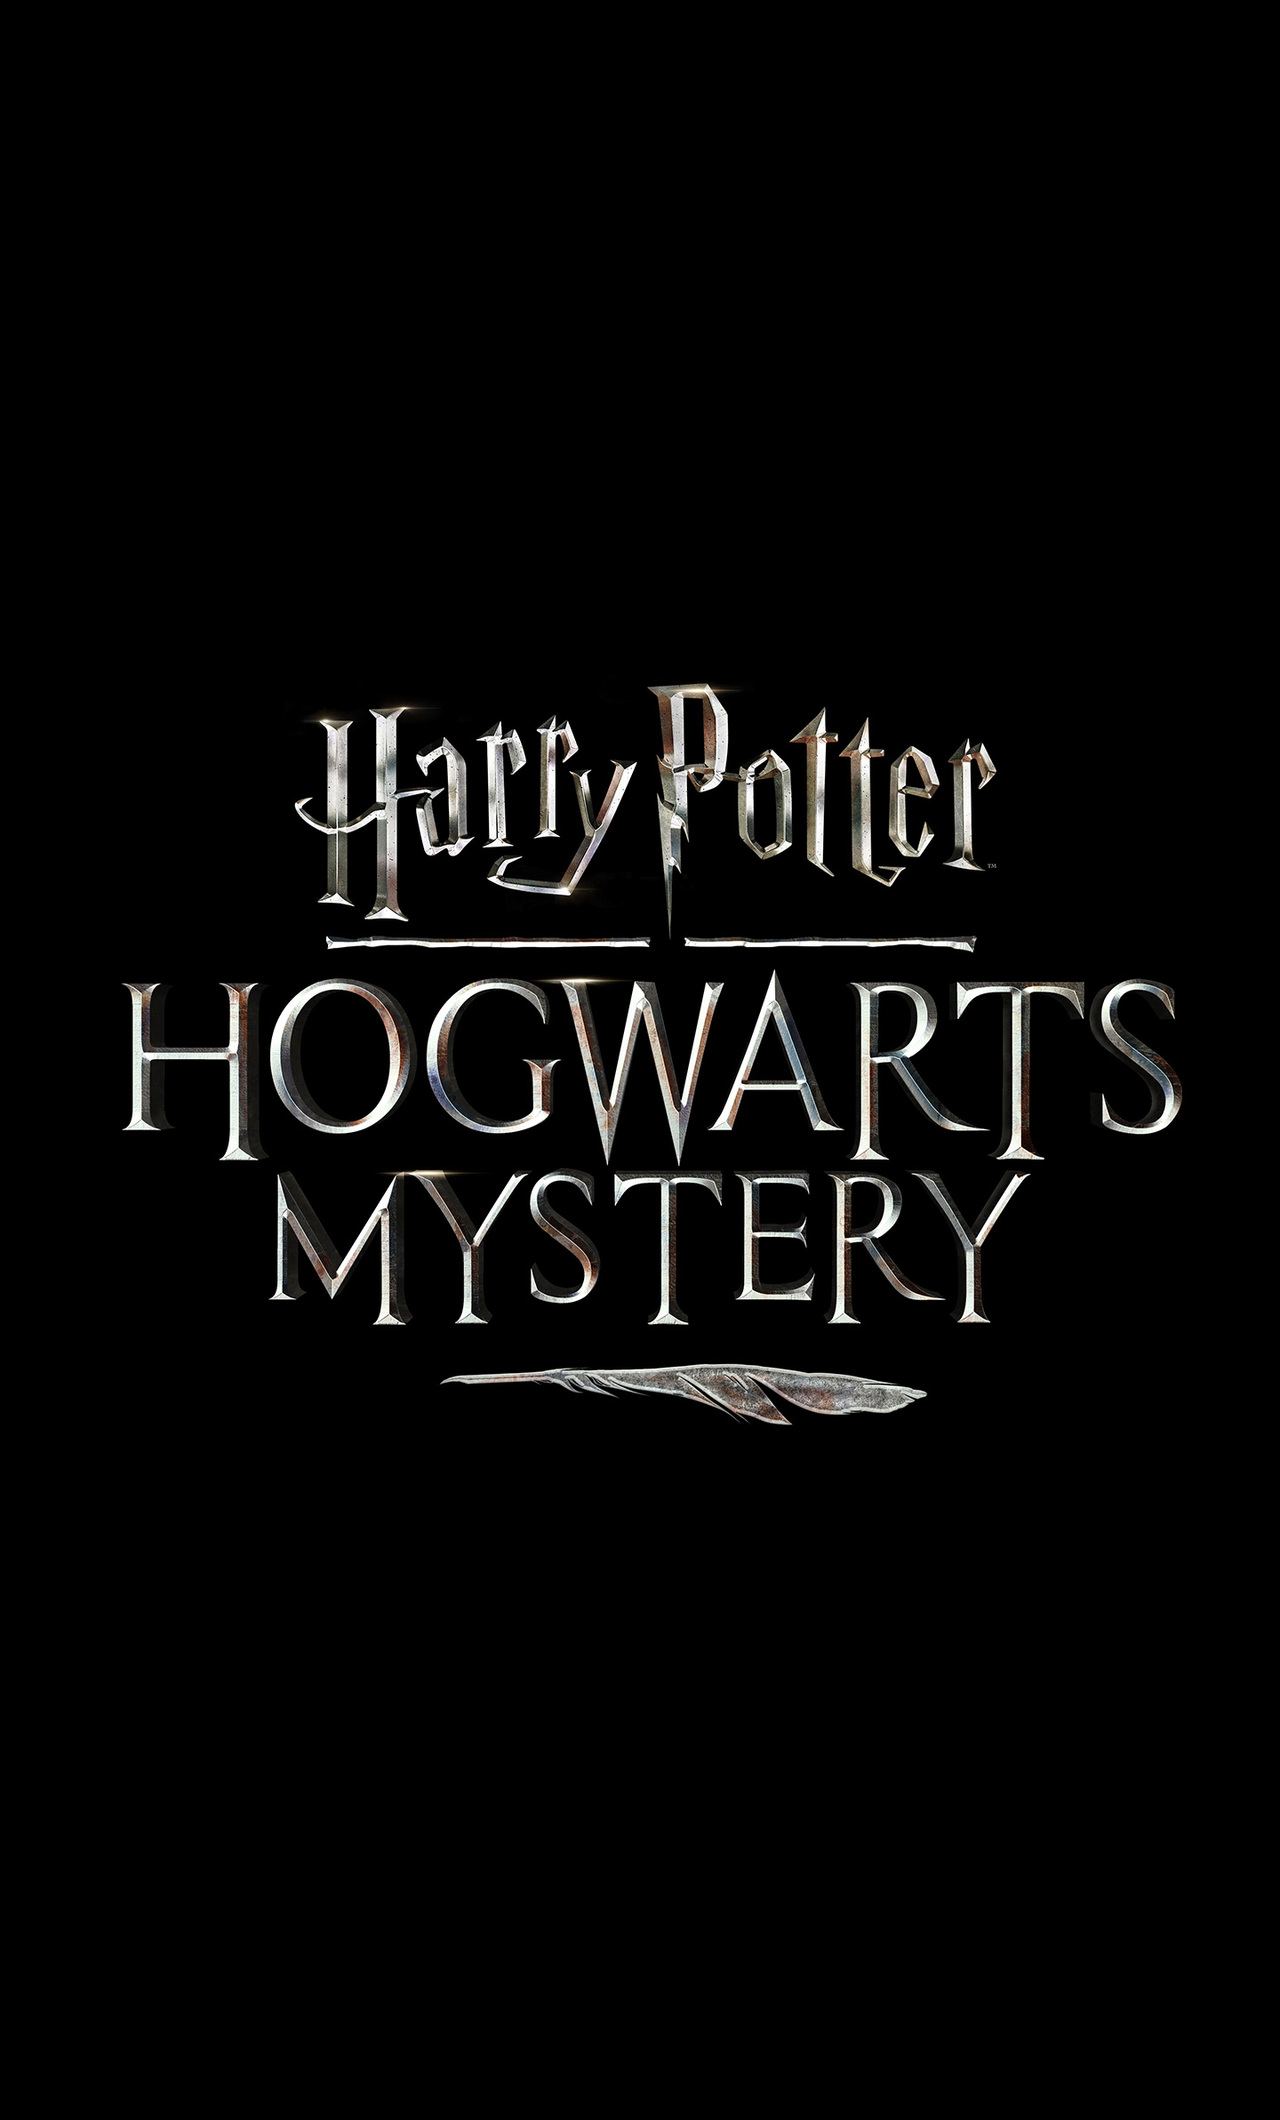 Wonderful Wallpaper Harry Potter Iphone 6 - harry-potter-hogwarts-mystery-game-logo-gc-1280x2120  You Should Have_59871.jpg